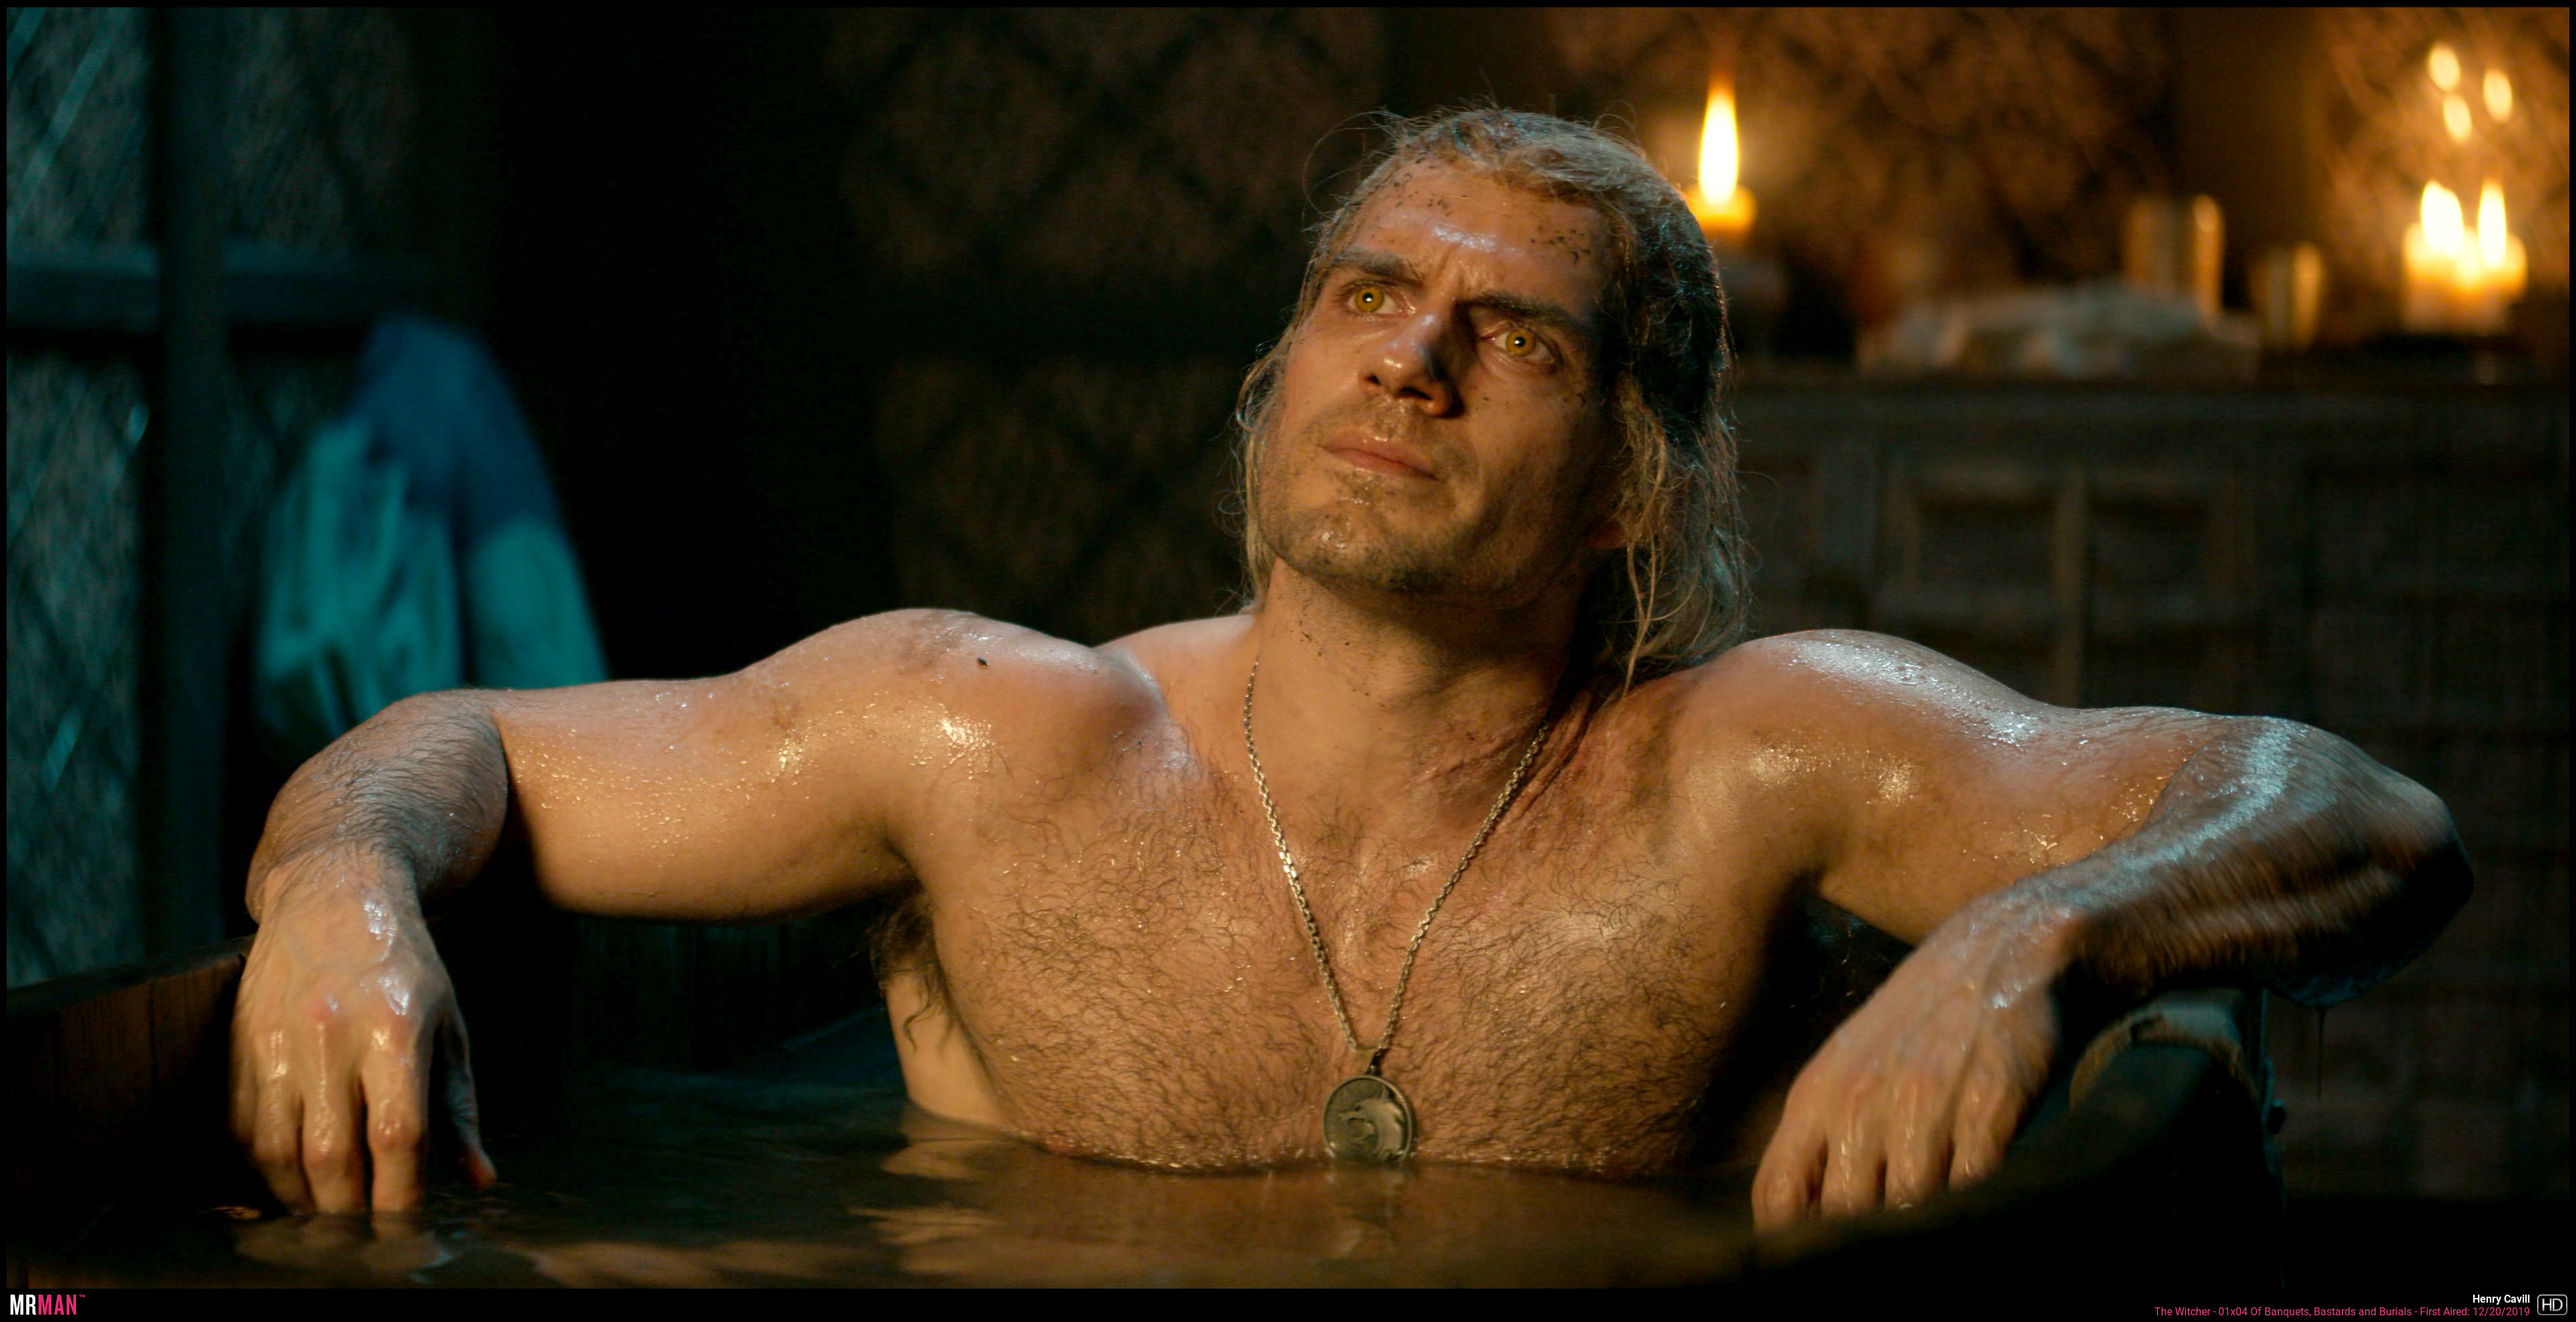 Amateur Porn Custome The Witcher joey batey from the witcher isnt gay but has gone nude